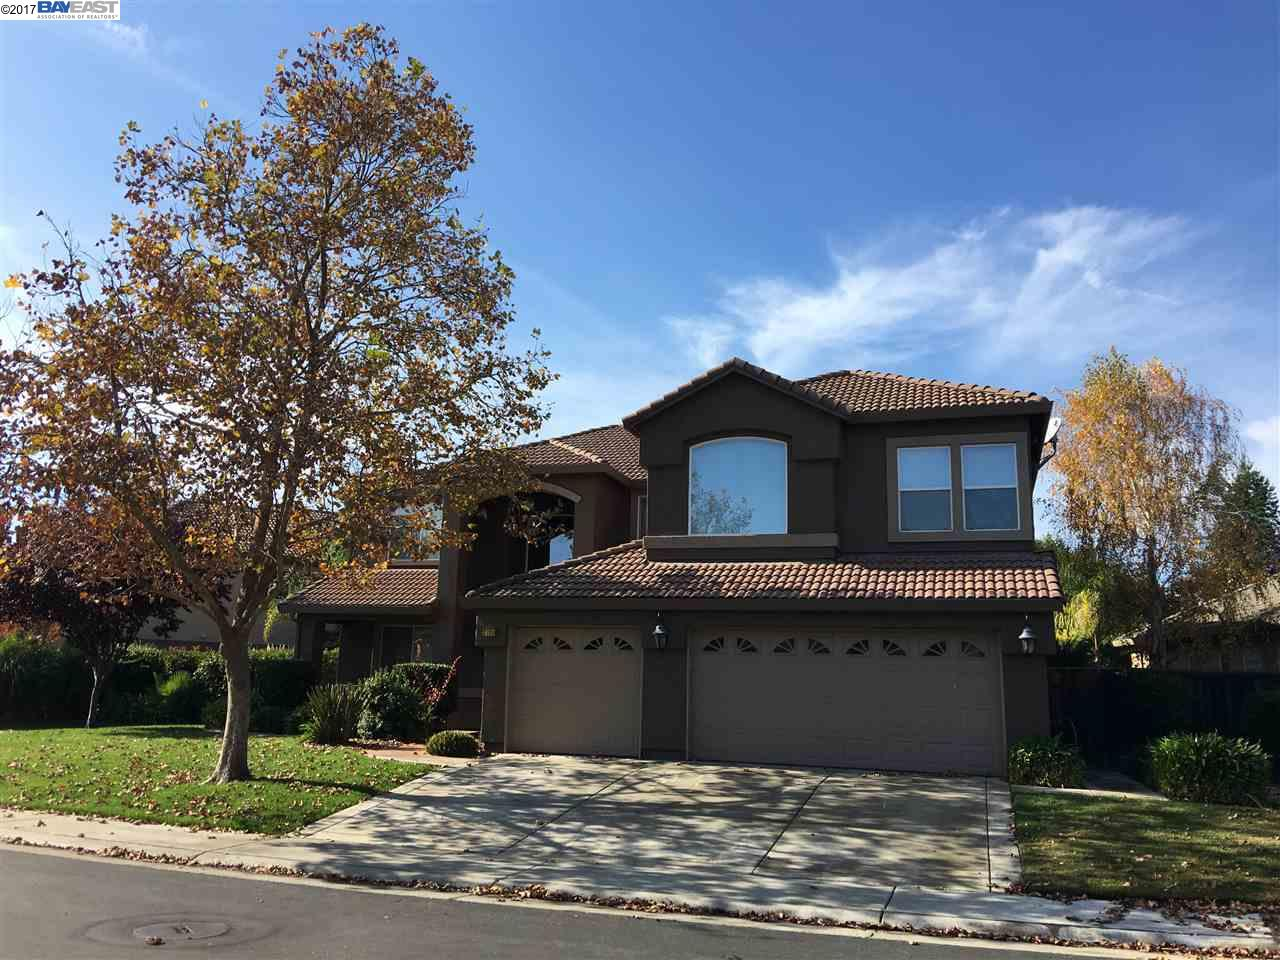 Casa Unifamiliar por un Venta en 2726 MARINA POINT LANE 2726 MARINA POINT LANE Elk Grove, California 95758 Estados Unidos